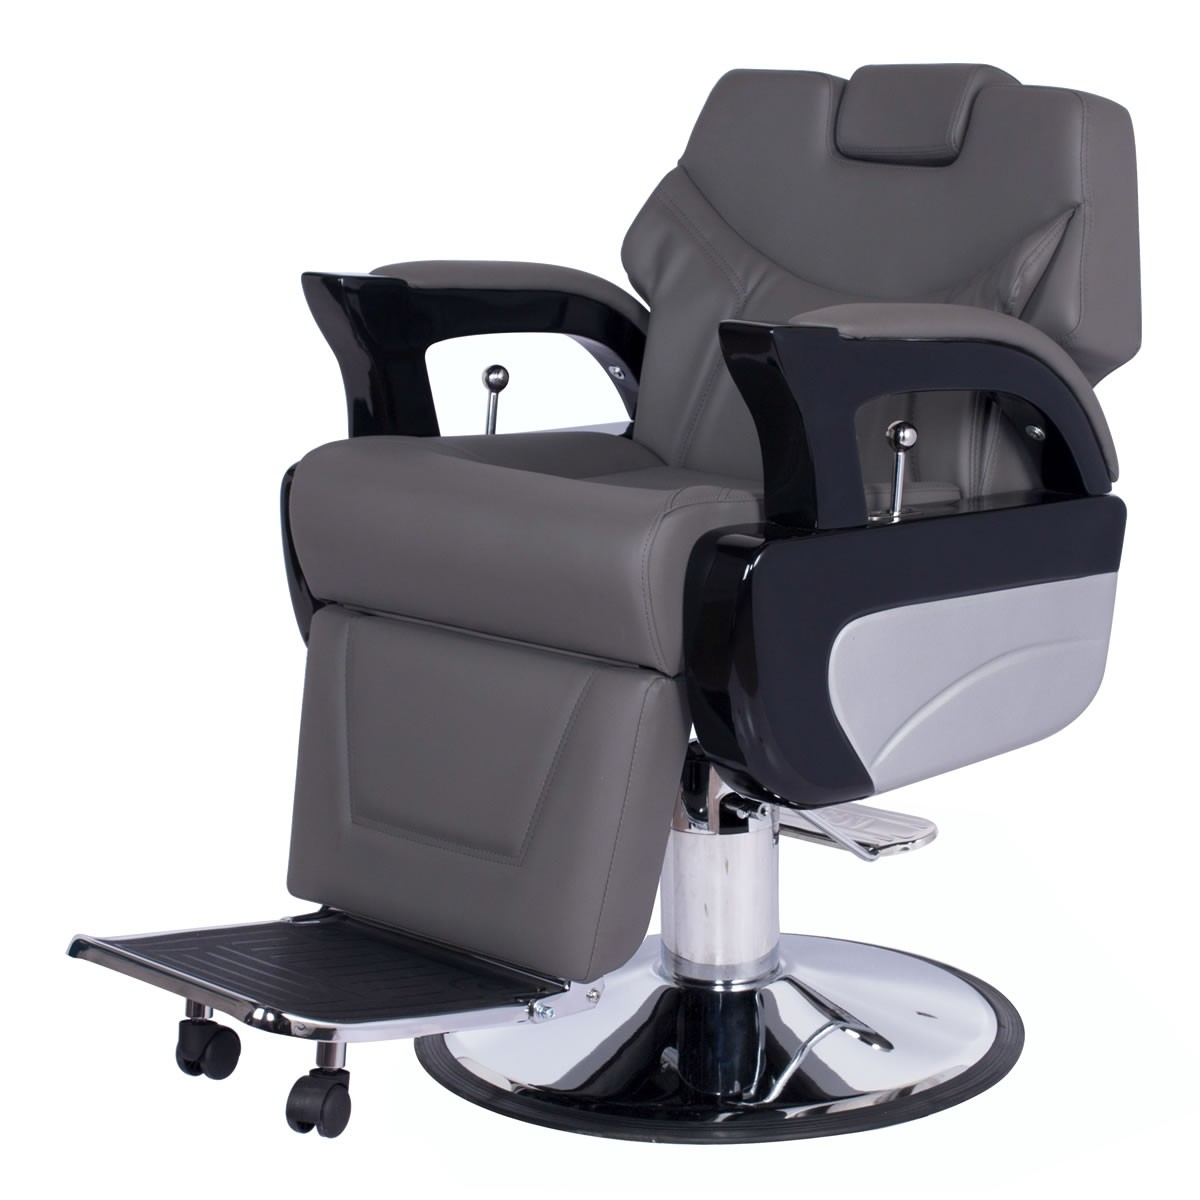 """AUGUSTO"" Heavy Duty Barber Chair in Grey, Grey Barber Chairs, Grey Barbershop Chairs"